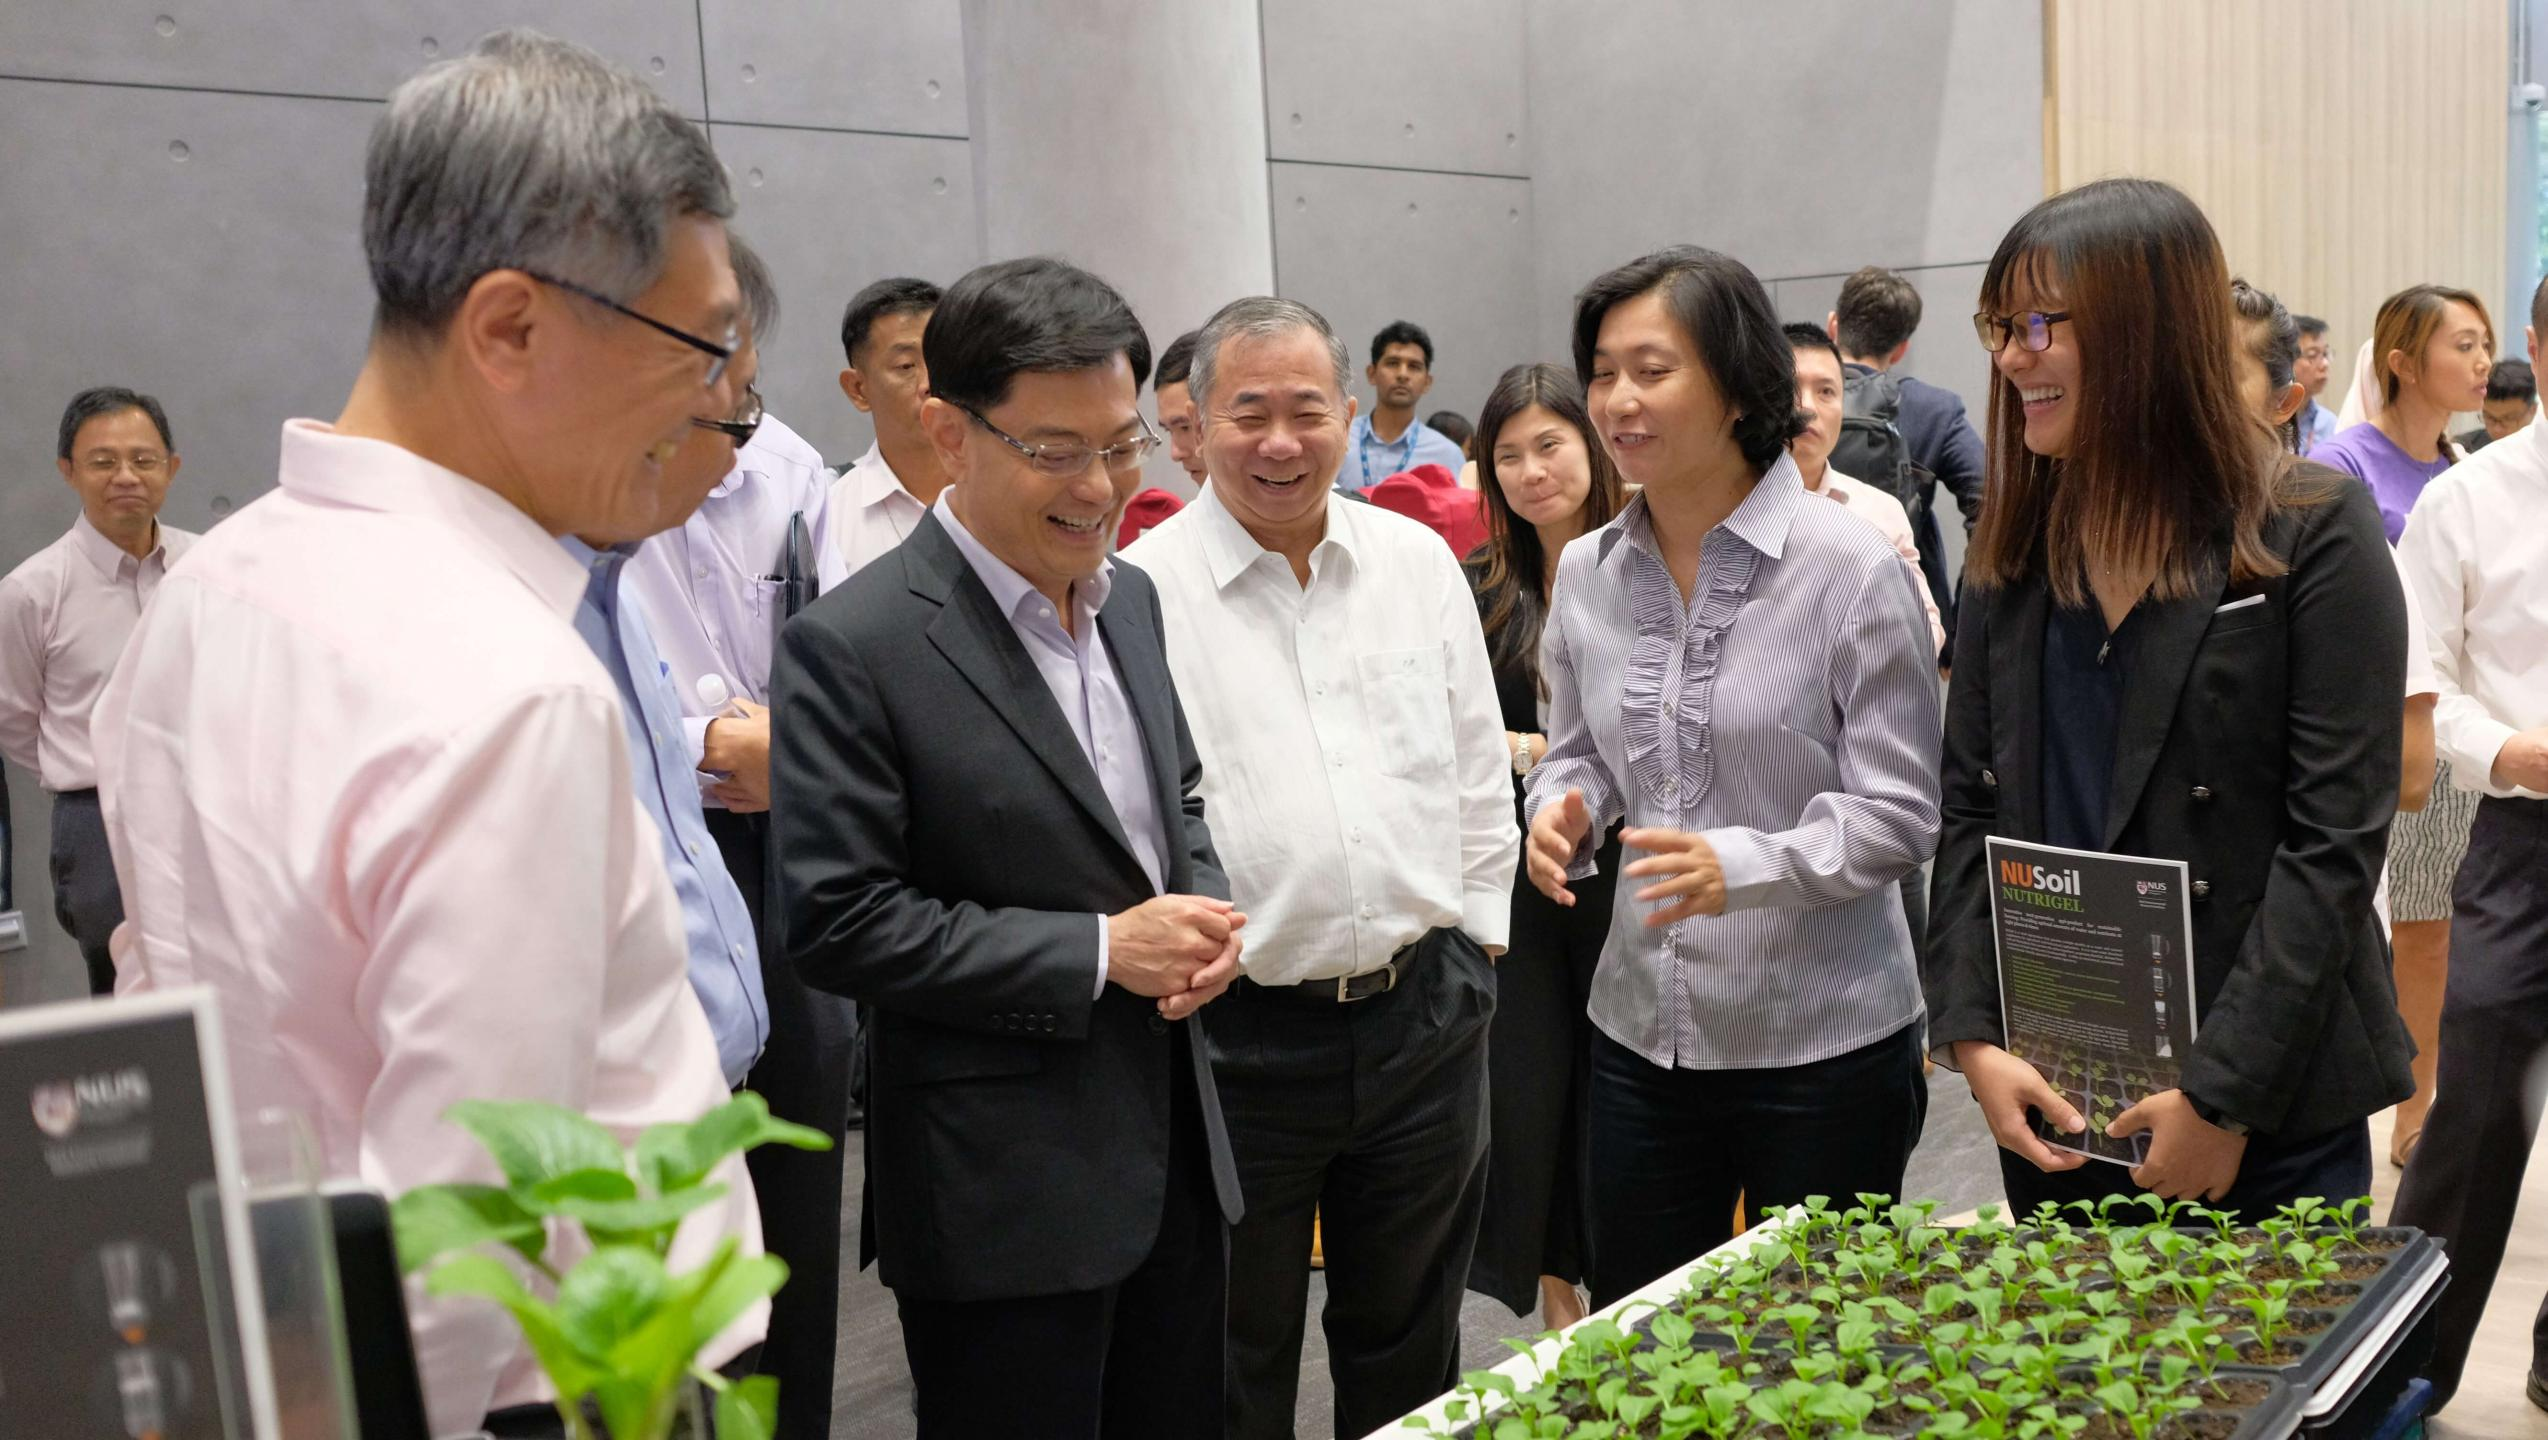 Mr Heng Swee Keat, Minister for Finance and Chairman of the National Research Foundation, viewing a display on NUSoil-Nutrigel, a start-up idea supported by the NUS Graduate Research Innovation Programme (NUS GRIP), during the launch of the new NUS innovation4.0 building. Photo courtesy: NUS